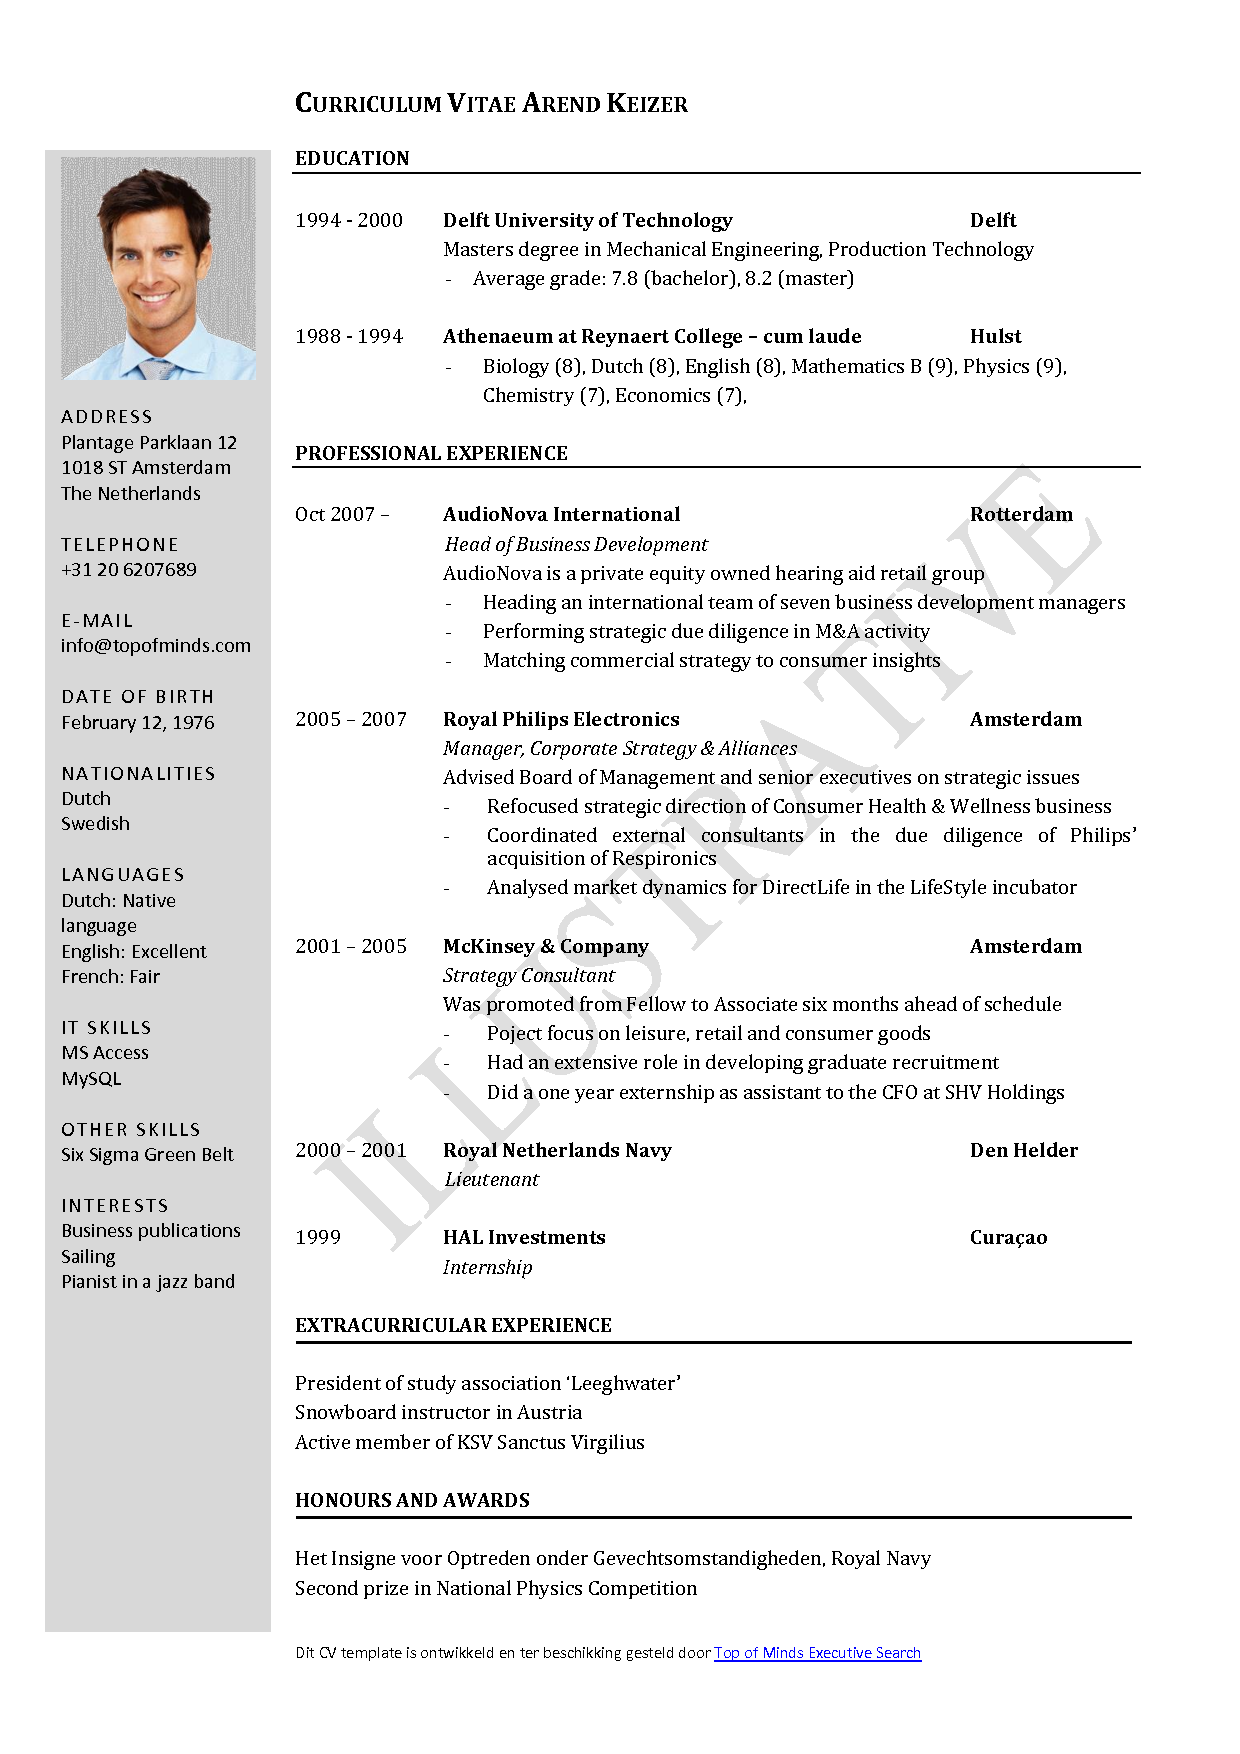 free curriculum vitae template word download cv template - Sample Resume Templates Word